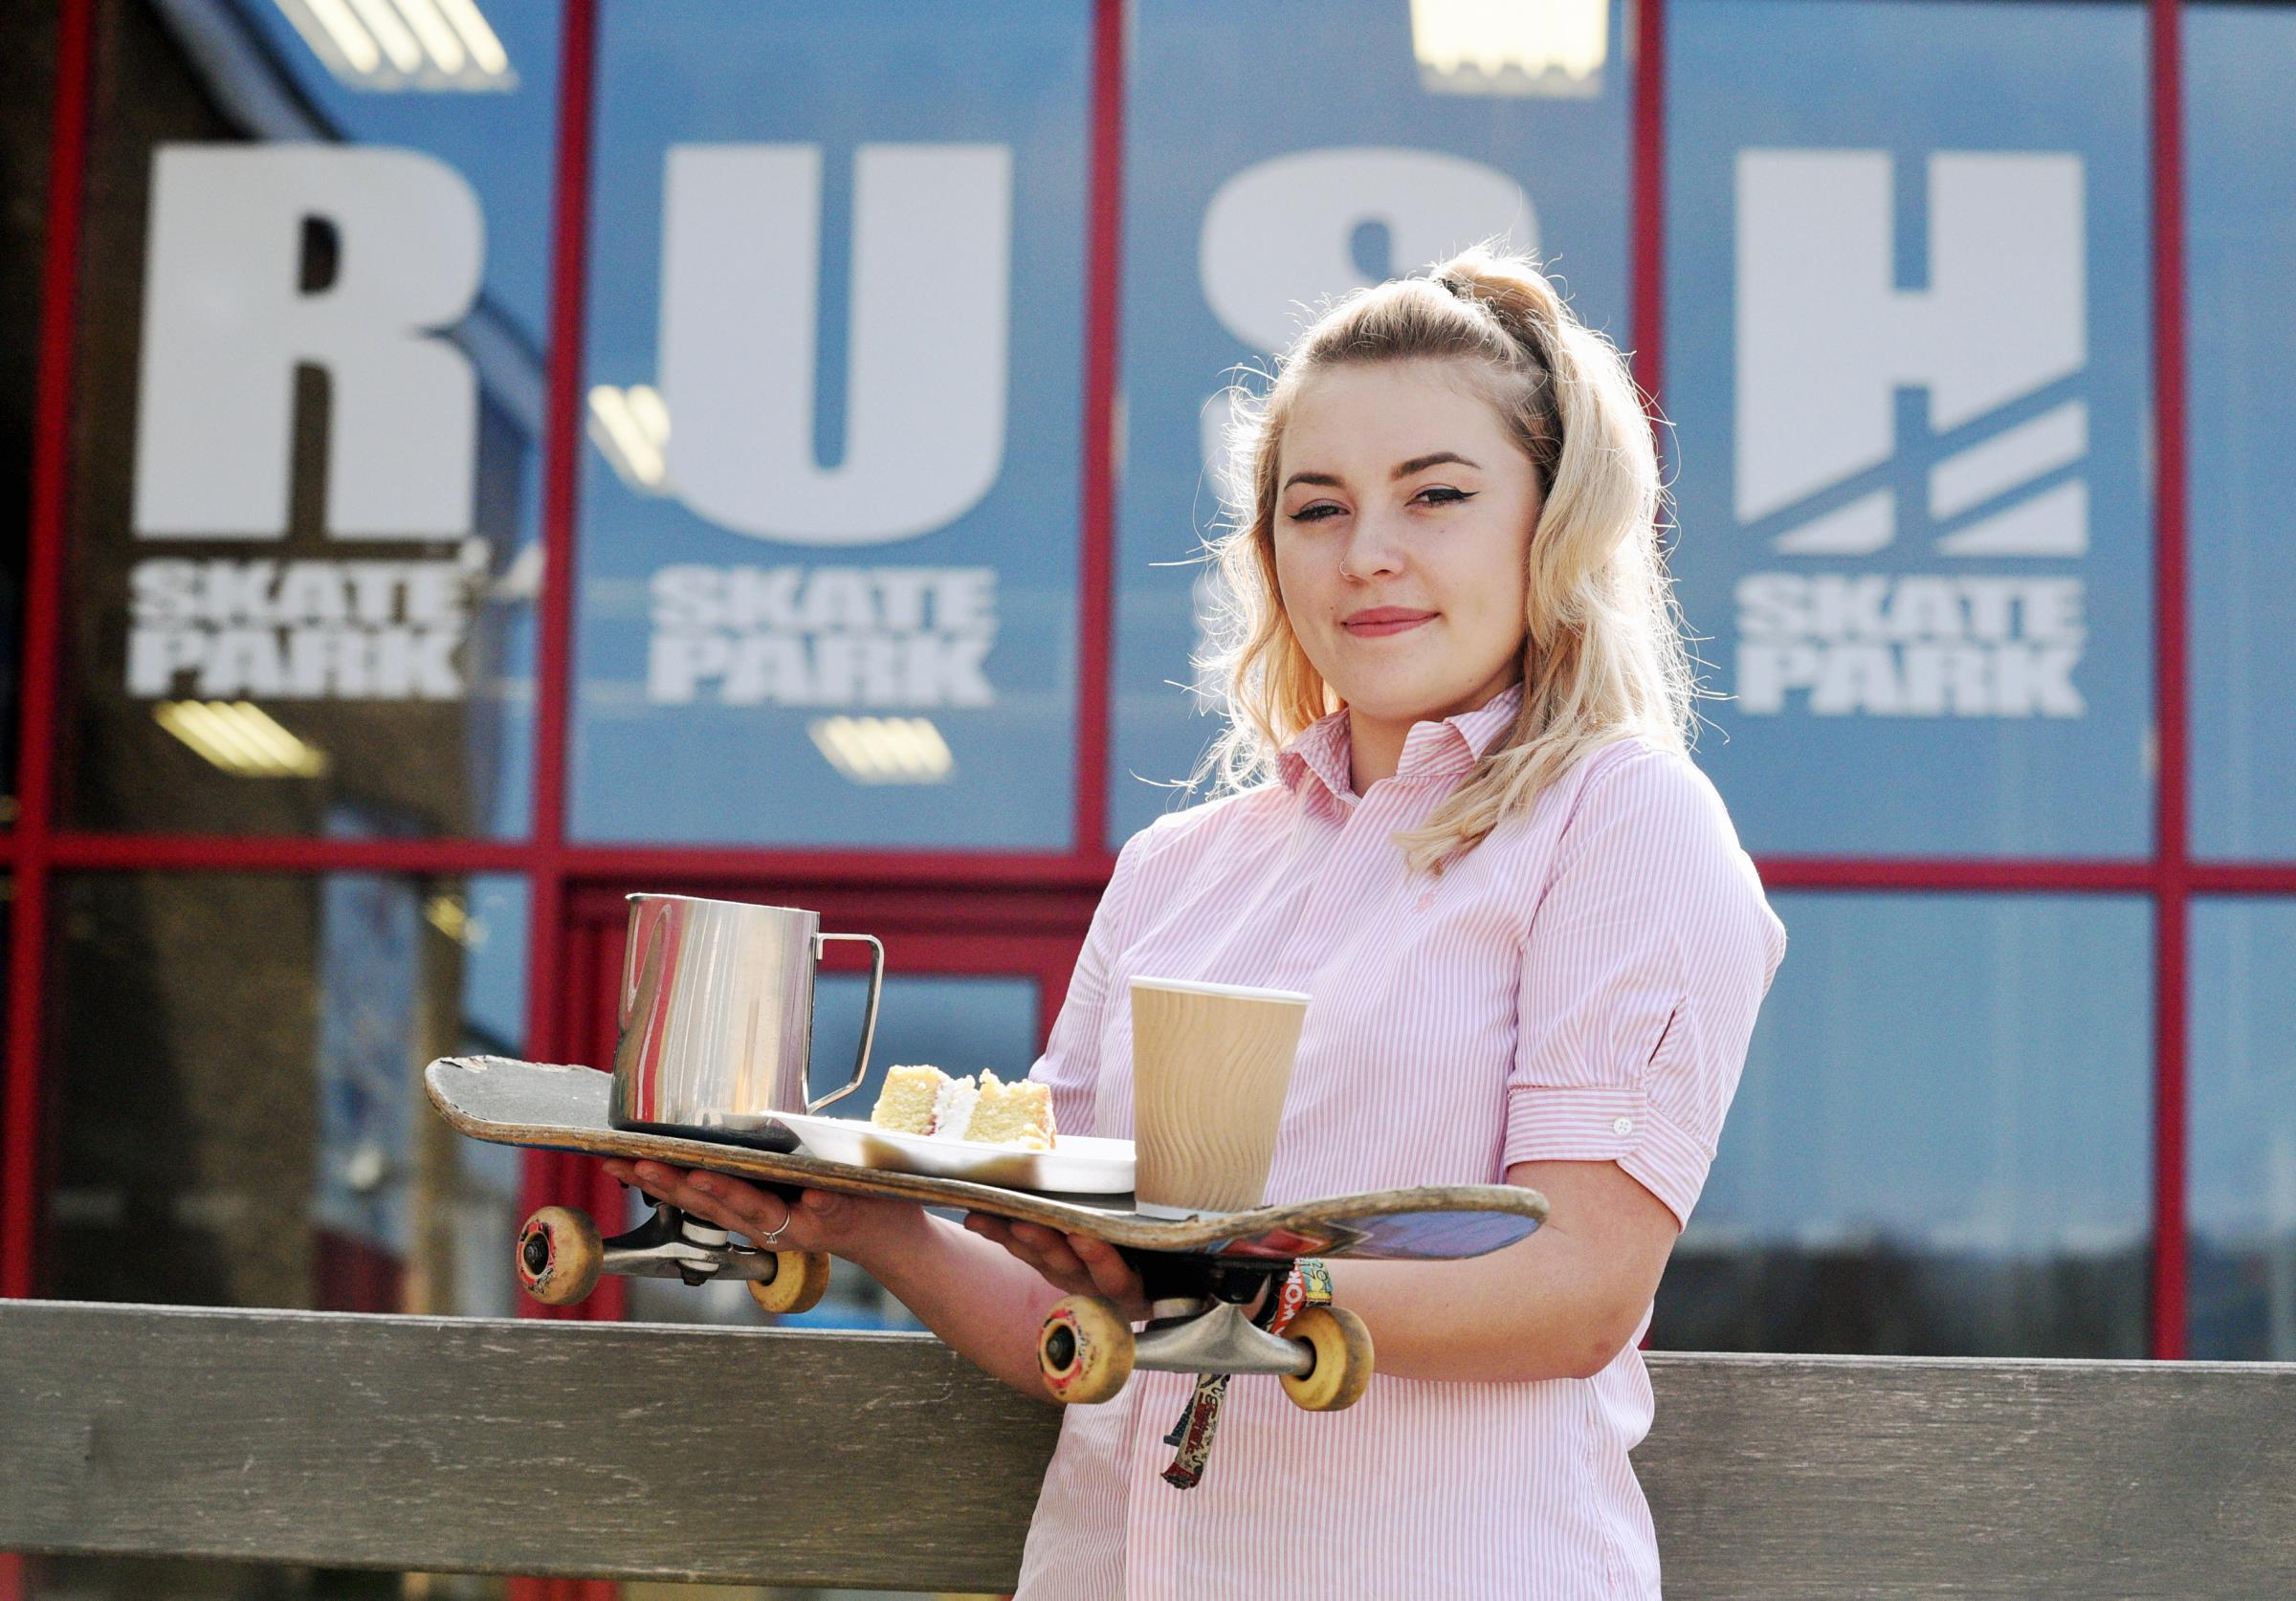 Elle Tripp is hosting a coffee morning at Rush Skatepark to raise money for prostate cancer. Photograph Simon Pizzey